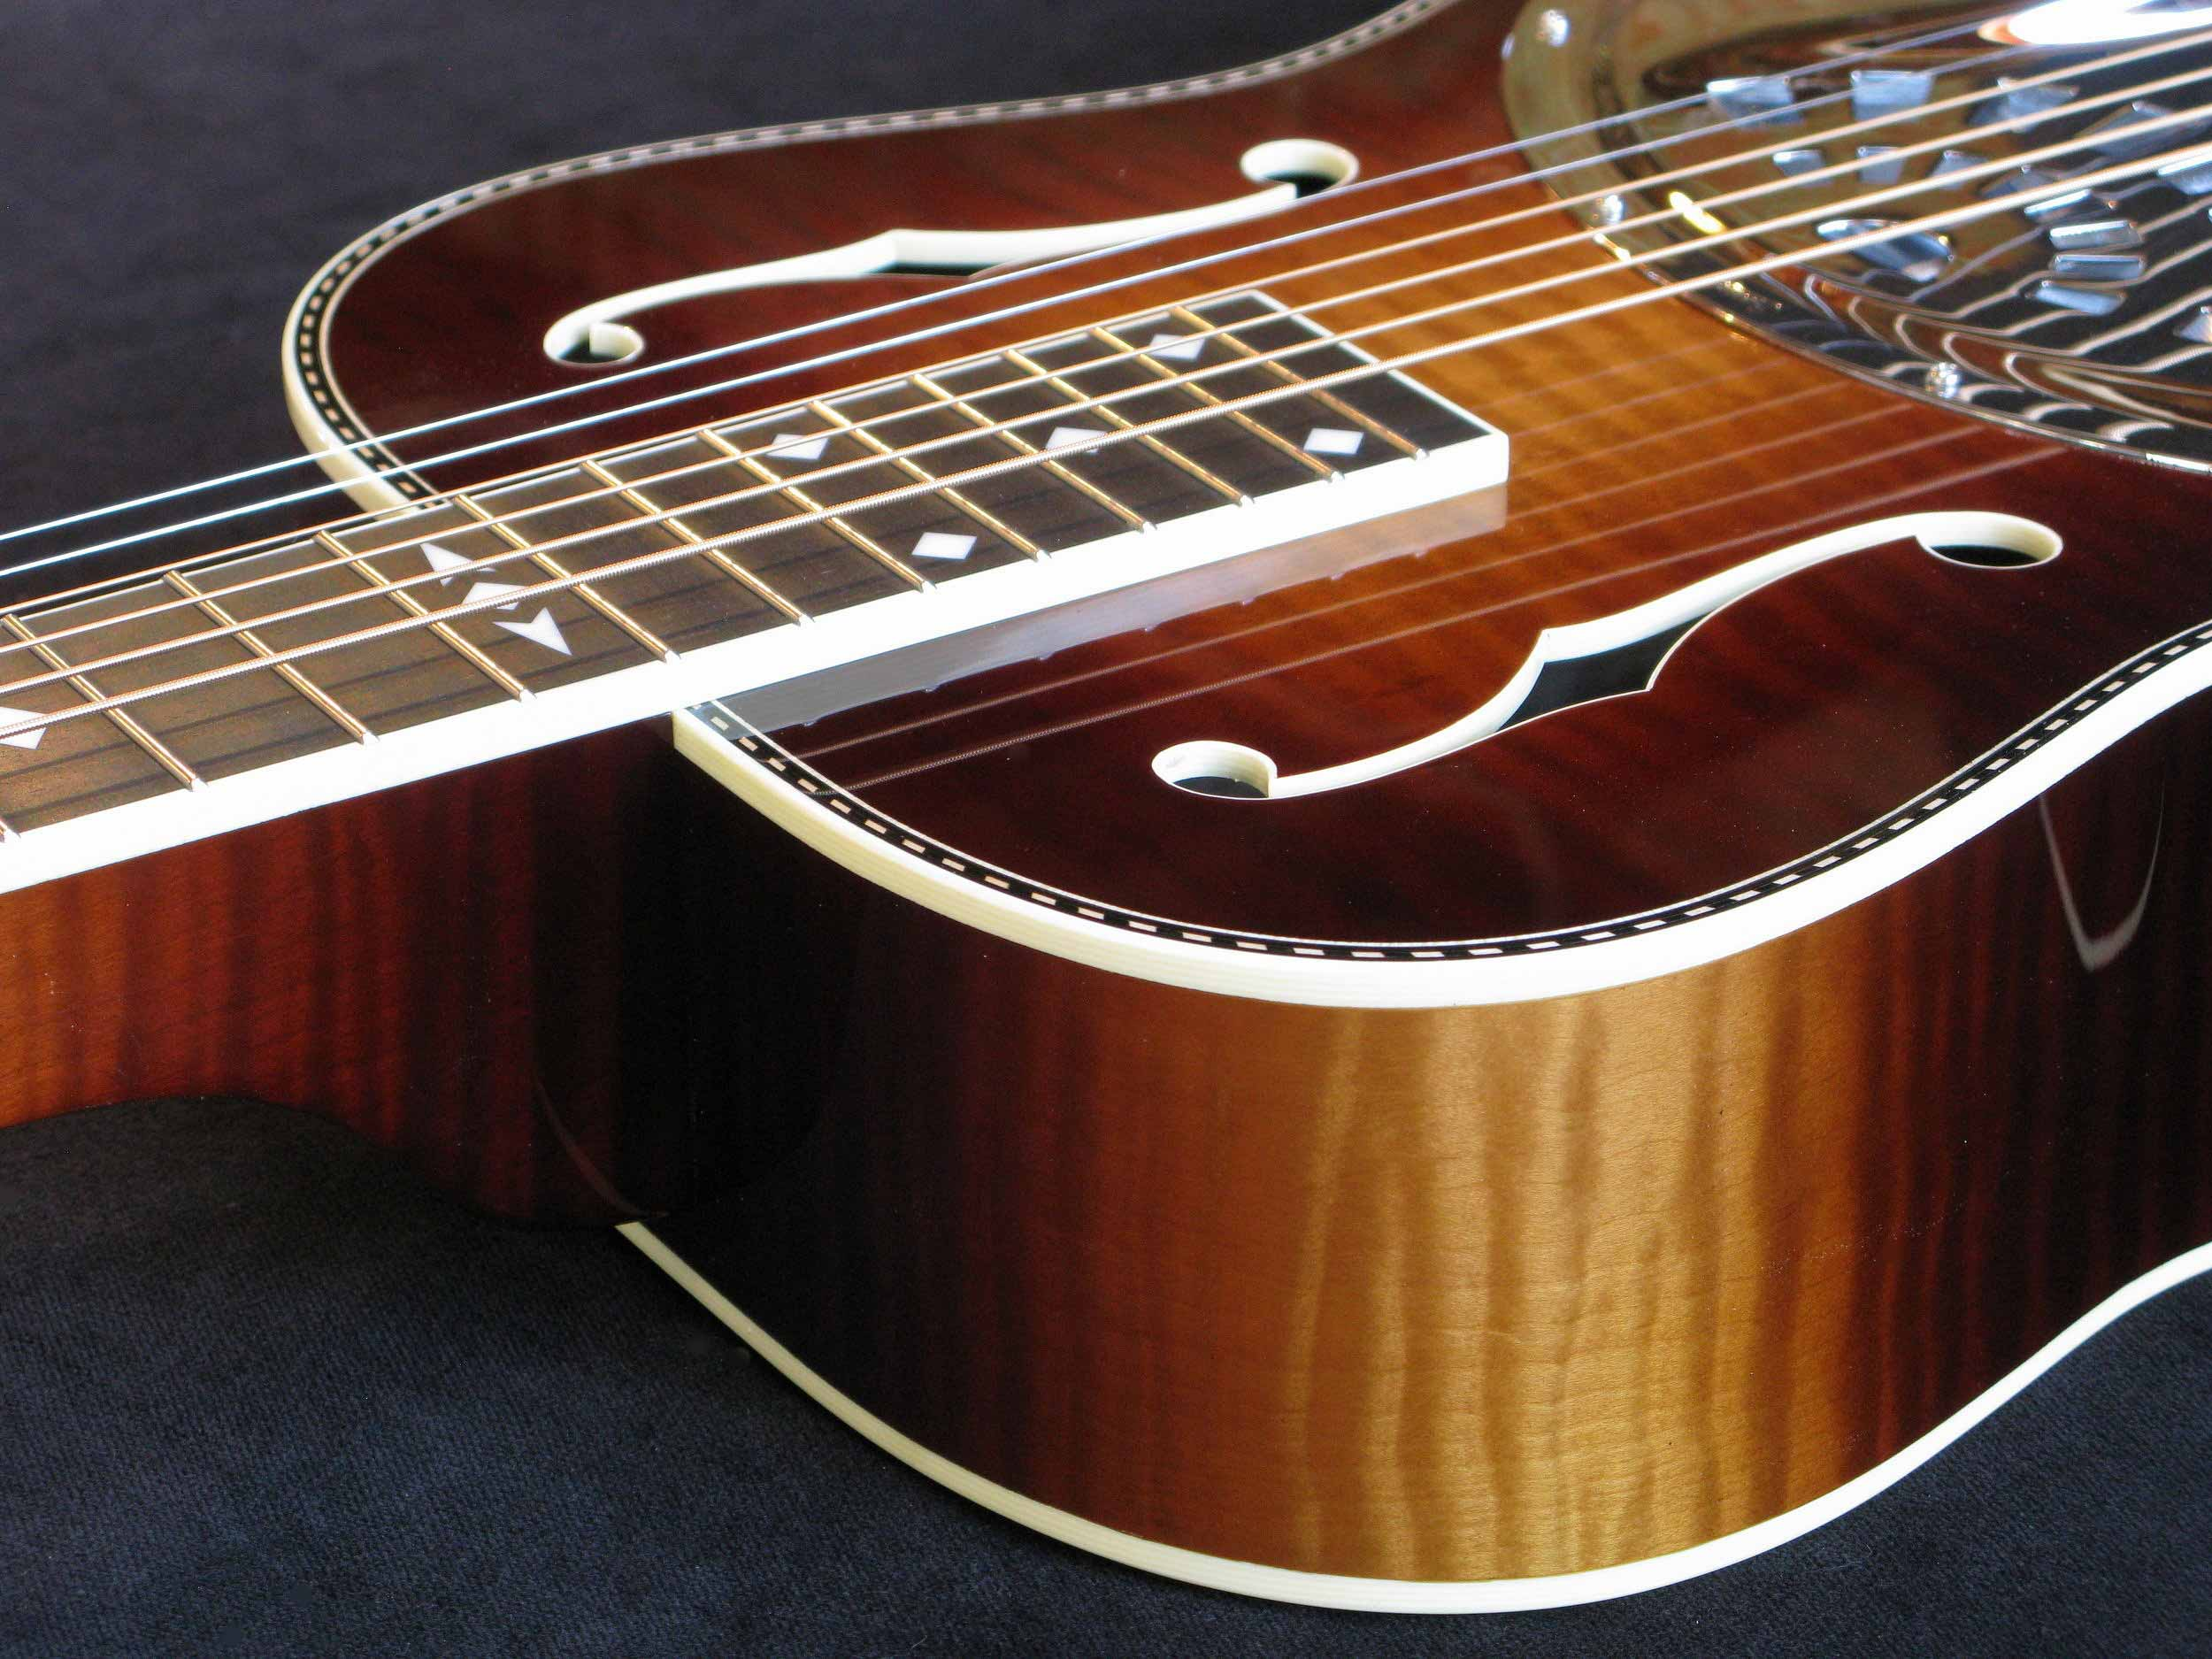 06+archtop+on+bench2.jpg